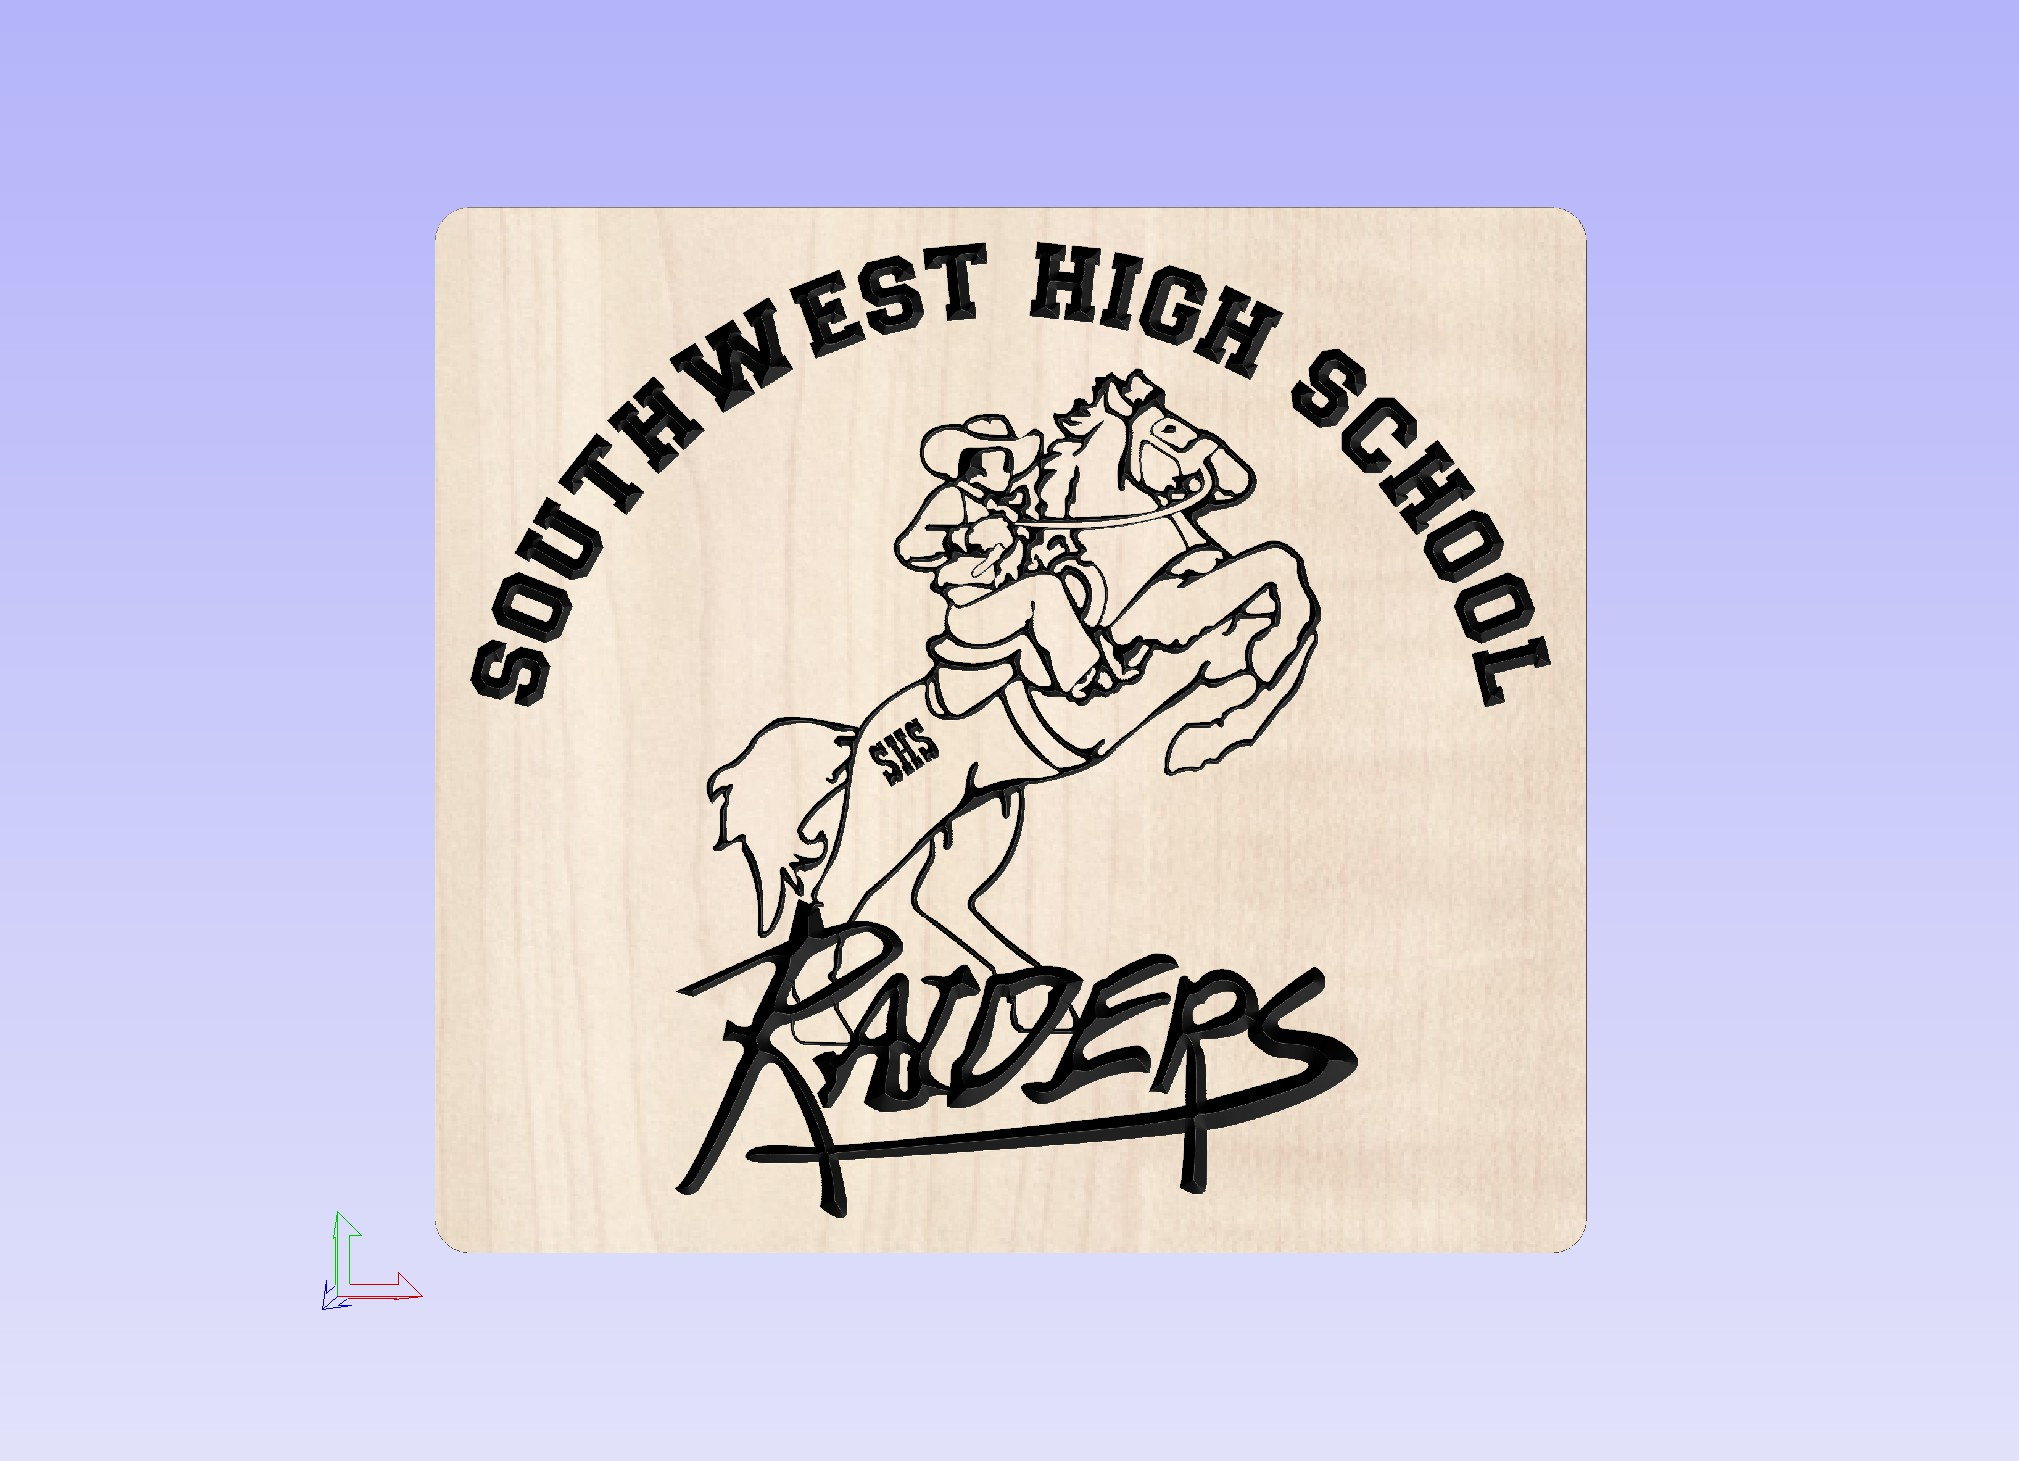 Southwest HS Plaque.jpg